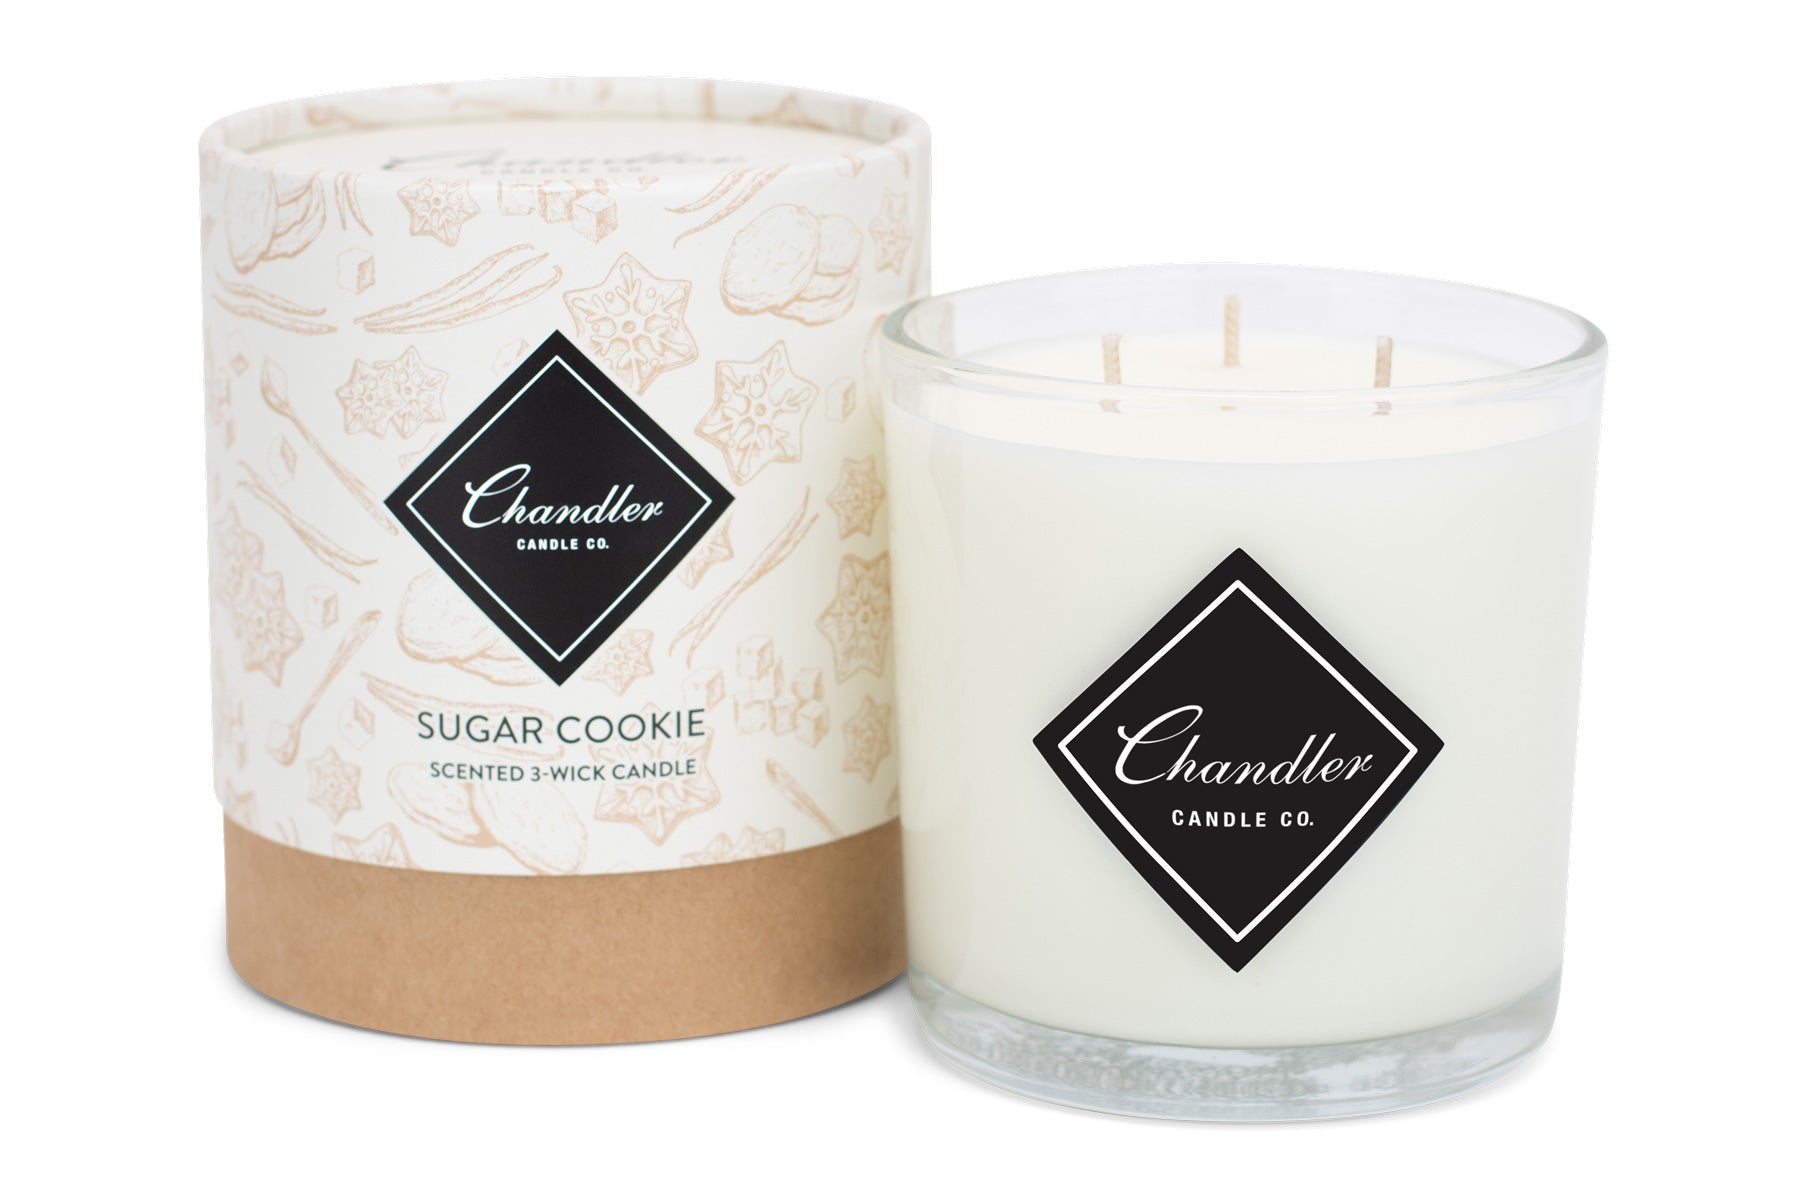 Large 3-Wick Sugar Cookie Scented Candle